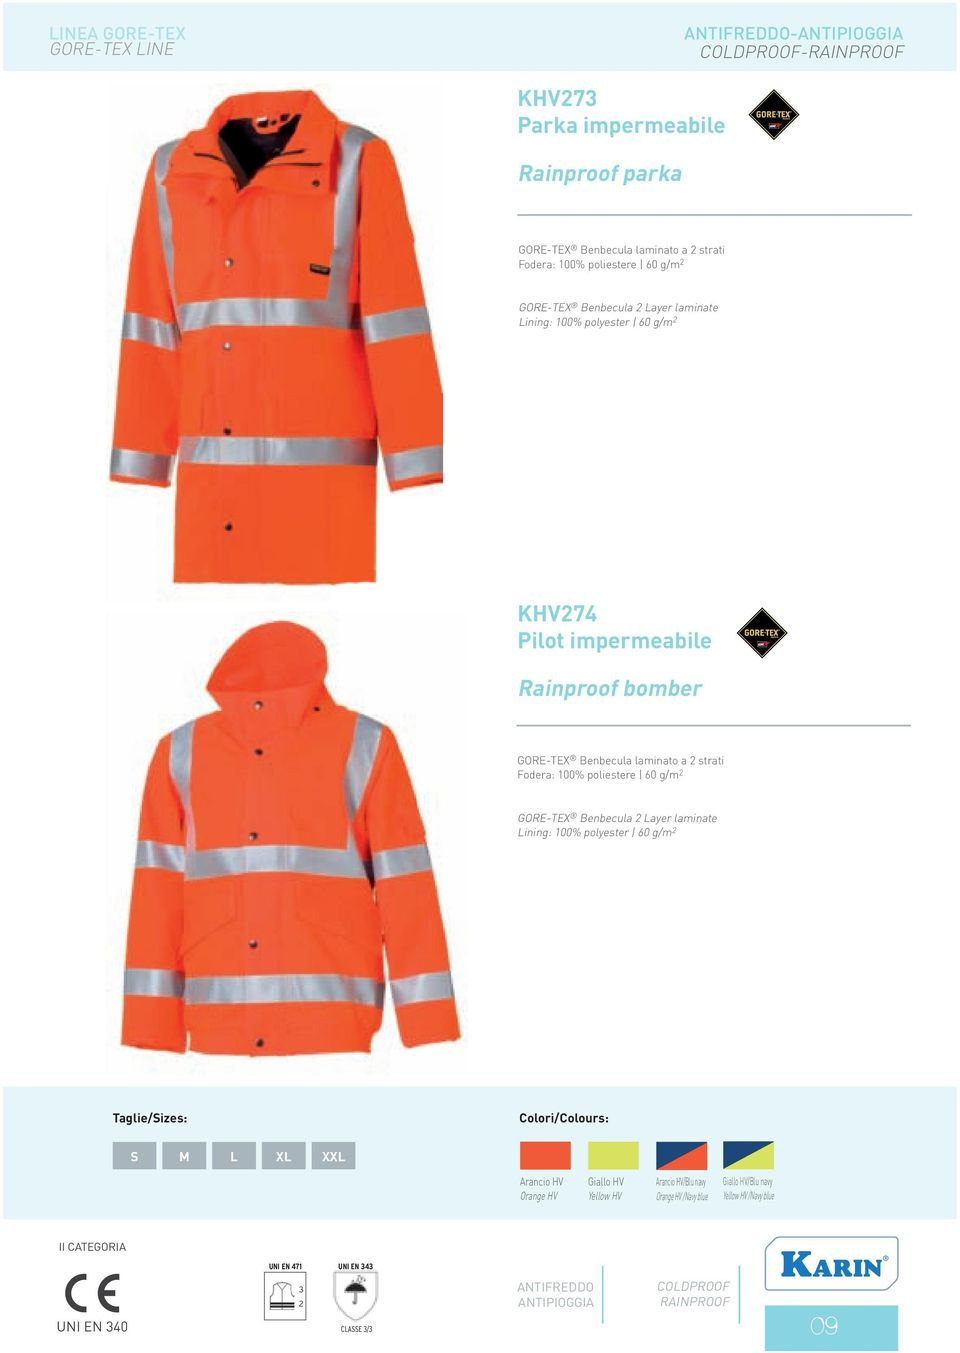 poliestere 60 g/m 2 GORE-TEX Benbecula 2 Layer laminate Lining: 100% polyester 60 g/m 2 Taglie/Sizes: Colori/Colours: S M L XL XXL Arancio HV Orange HV